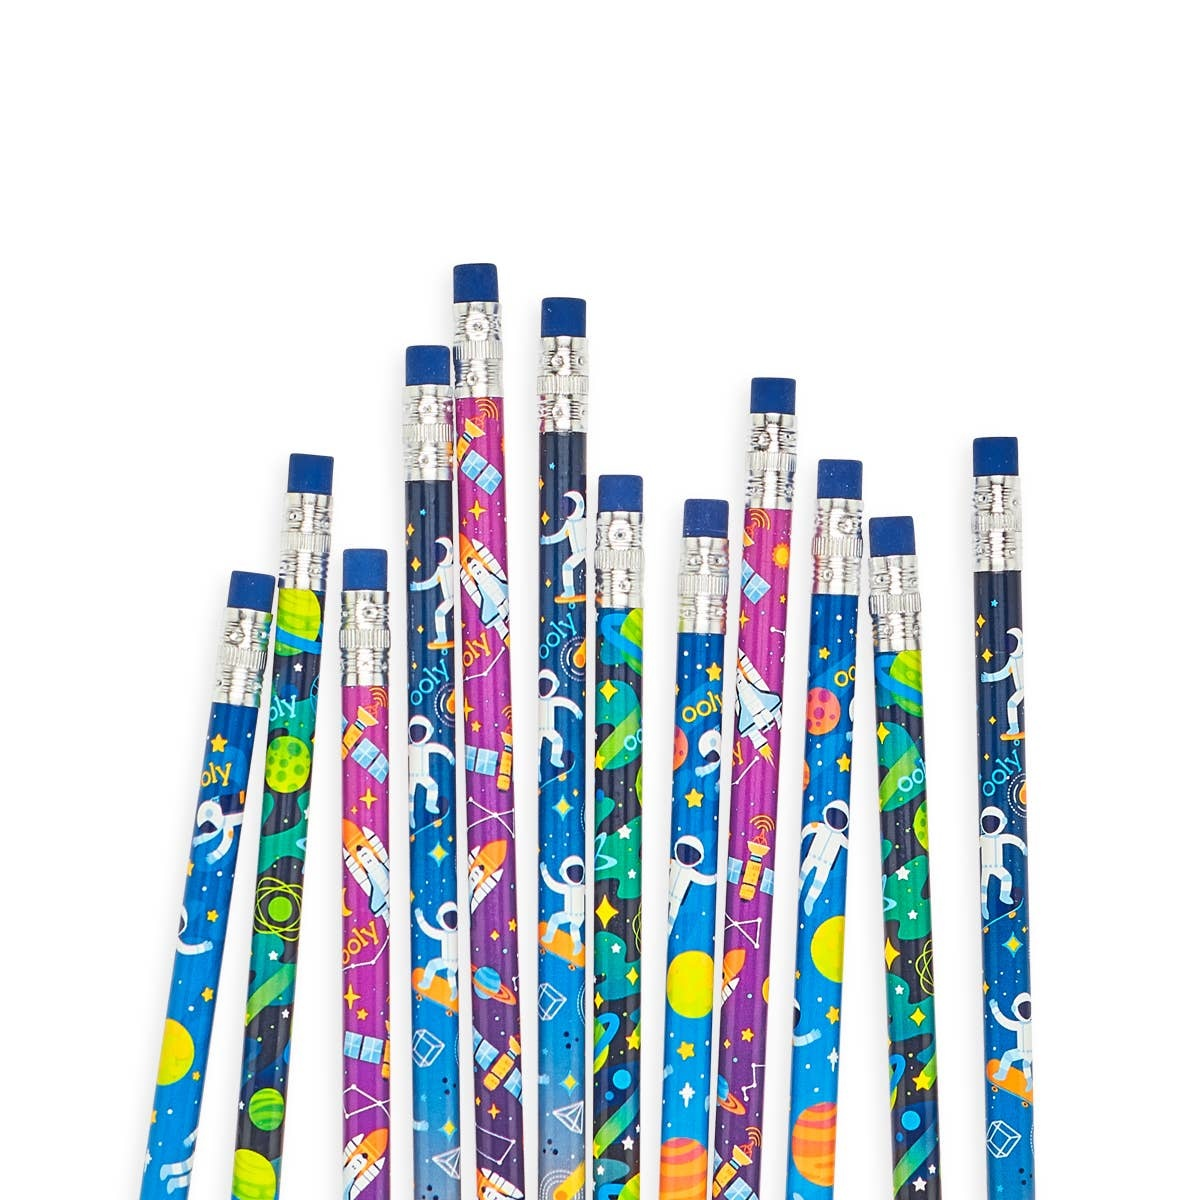 ooly Ooly Astronaut Graphite Pencils - Set of 12